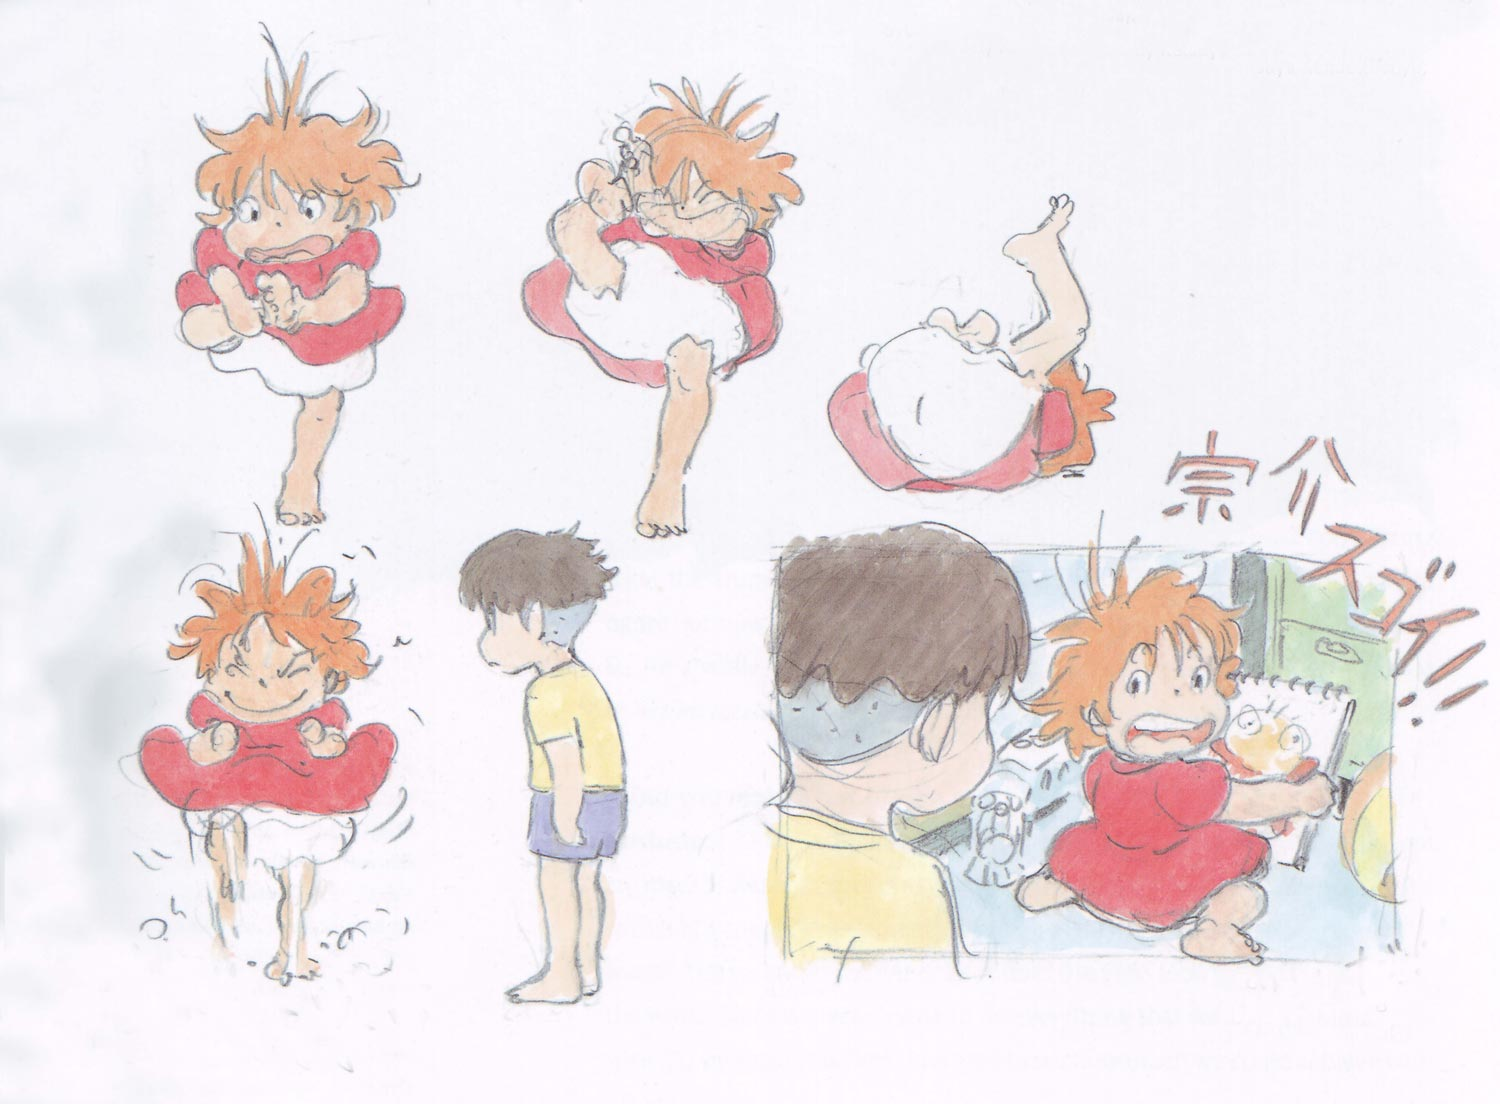 ponyo_on_the_cliff_by_the_sea_artwork_character__06.jpg